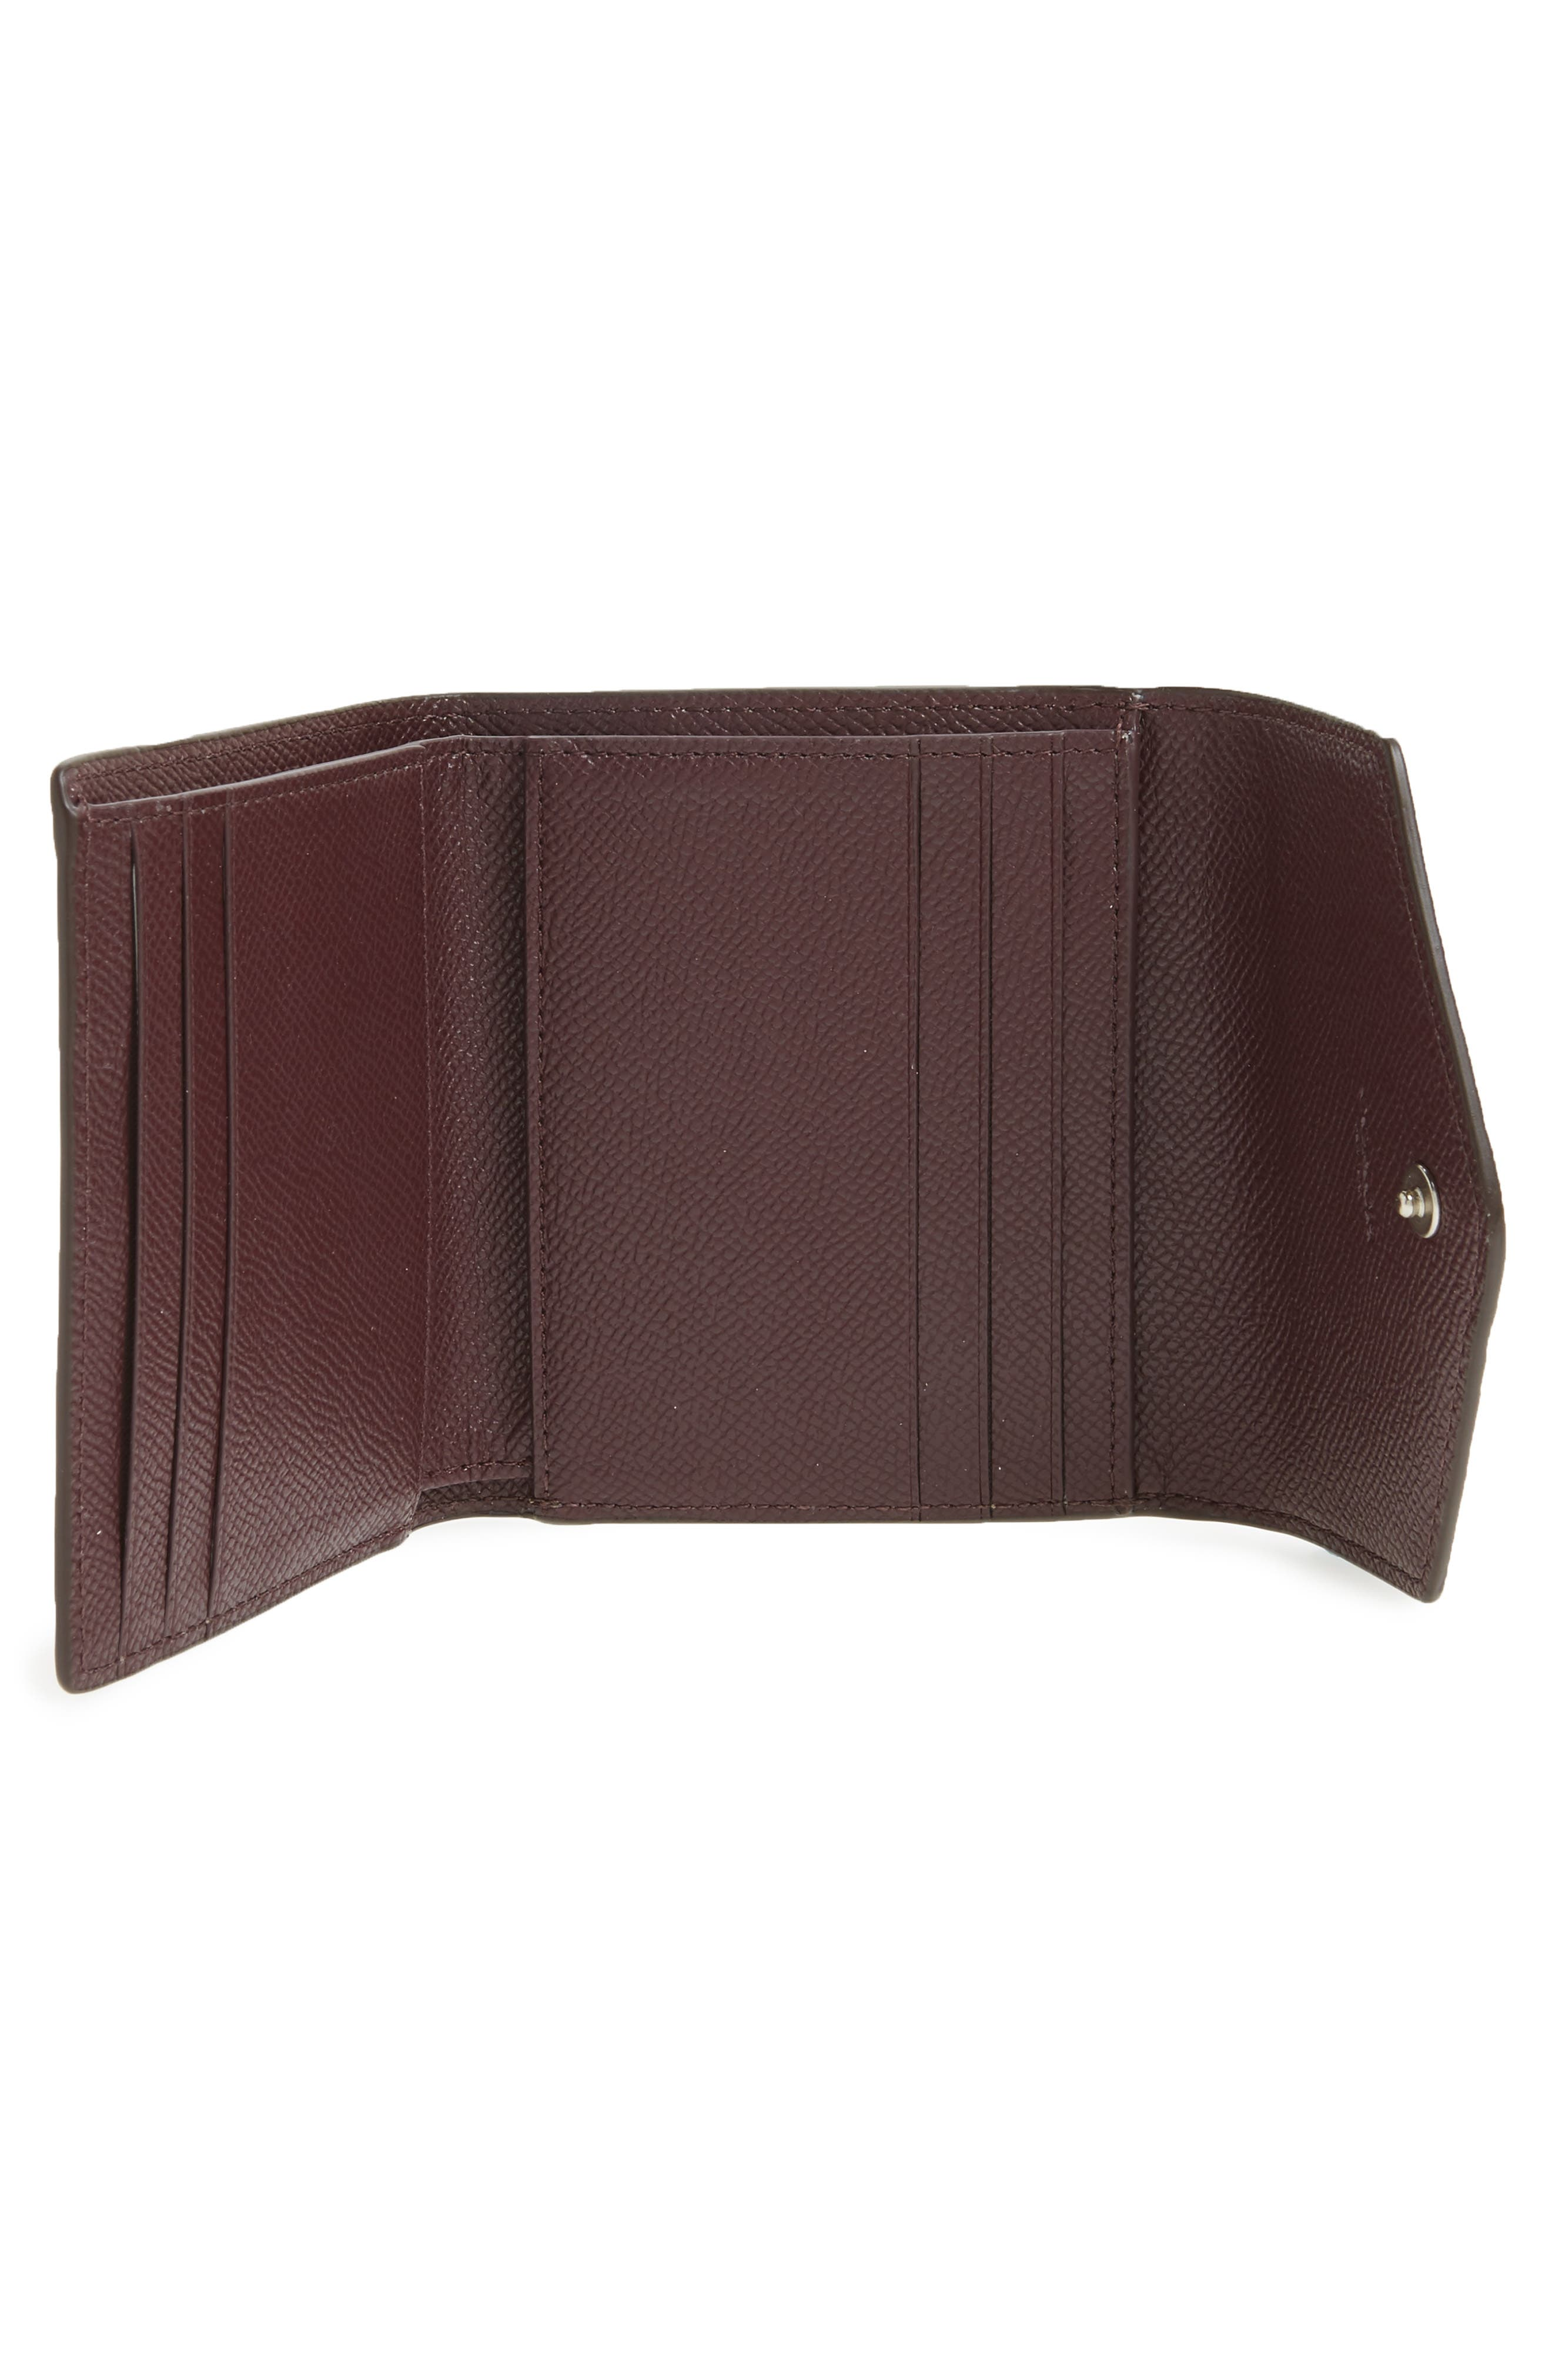 Small Colorblock Calfskin Leather Wallet,                             Alternate thumbnail 2, color,                             029